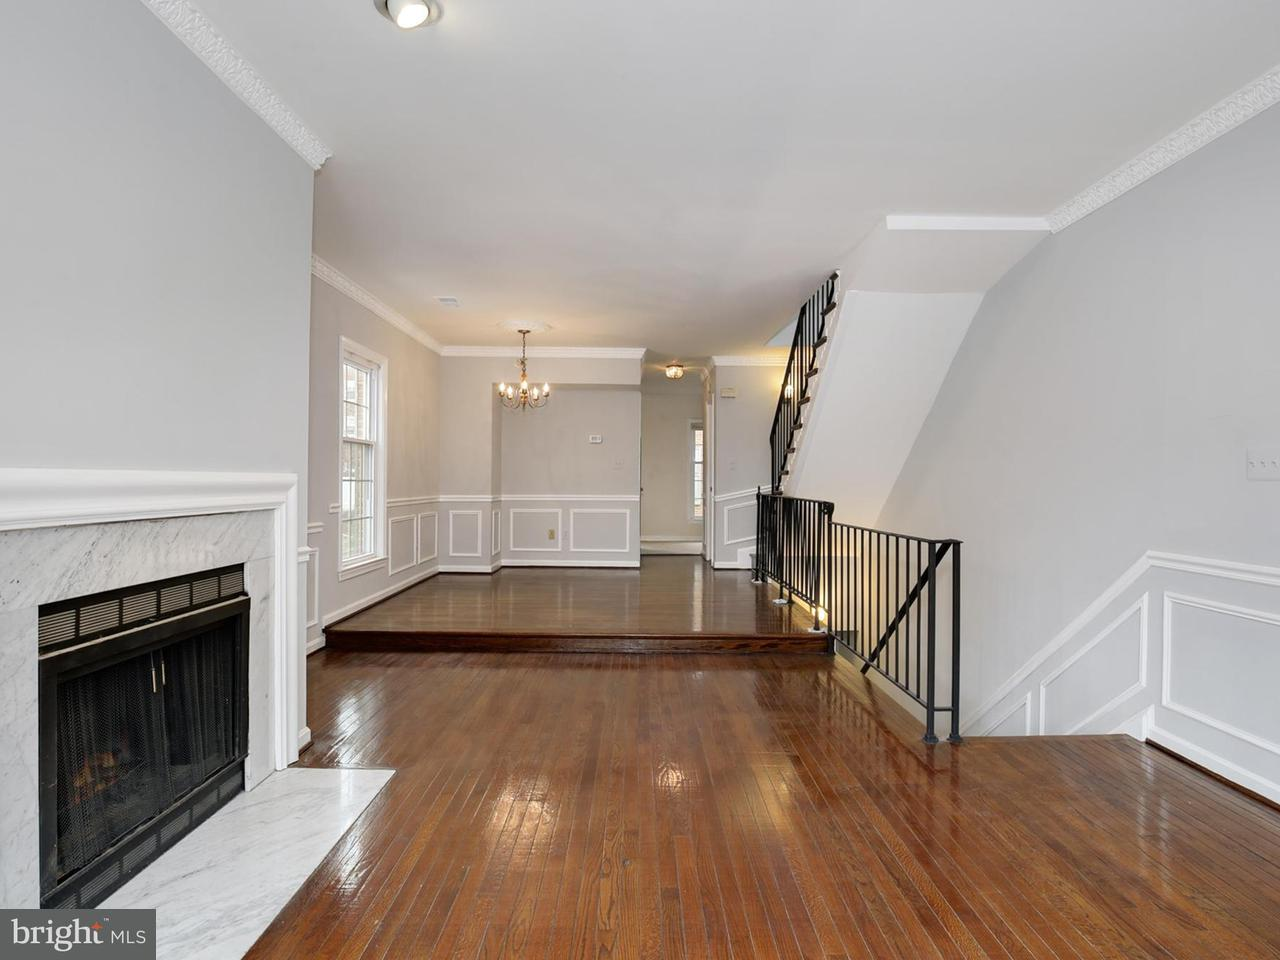 Additional photo for property listing at 1690 EUCLID ST NW #B 1690 EUCLID ST NW #B Washington, District Of Columbia 20009 United States